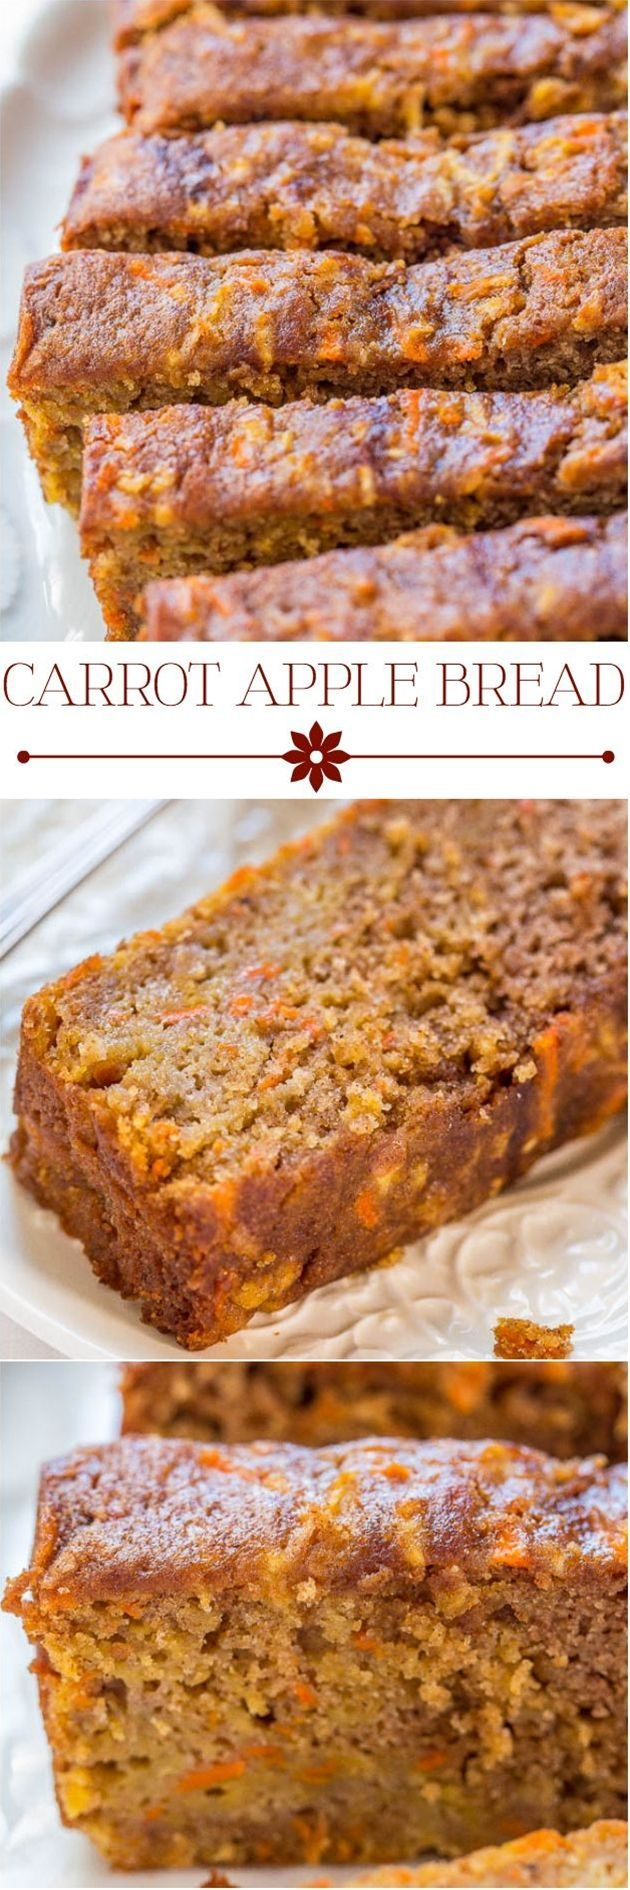 Carrot Apple Bread - Carrot cake with apples added and baked as a bread so it's healthier! Super moist, packed with flavor, fast and easy!! Apple Bread - Carrot cake with apples added and baked as a bread so it's healthier! Super moist, packed with flavor, fast and easy!!